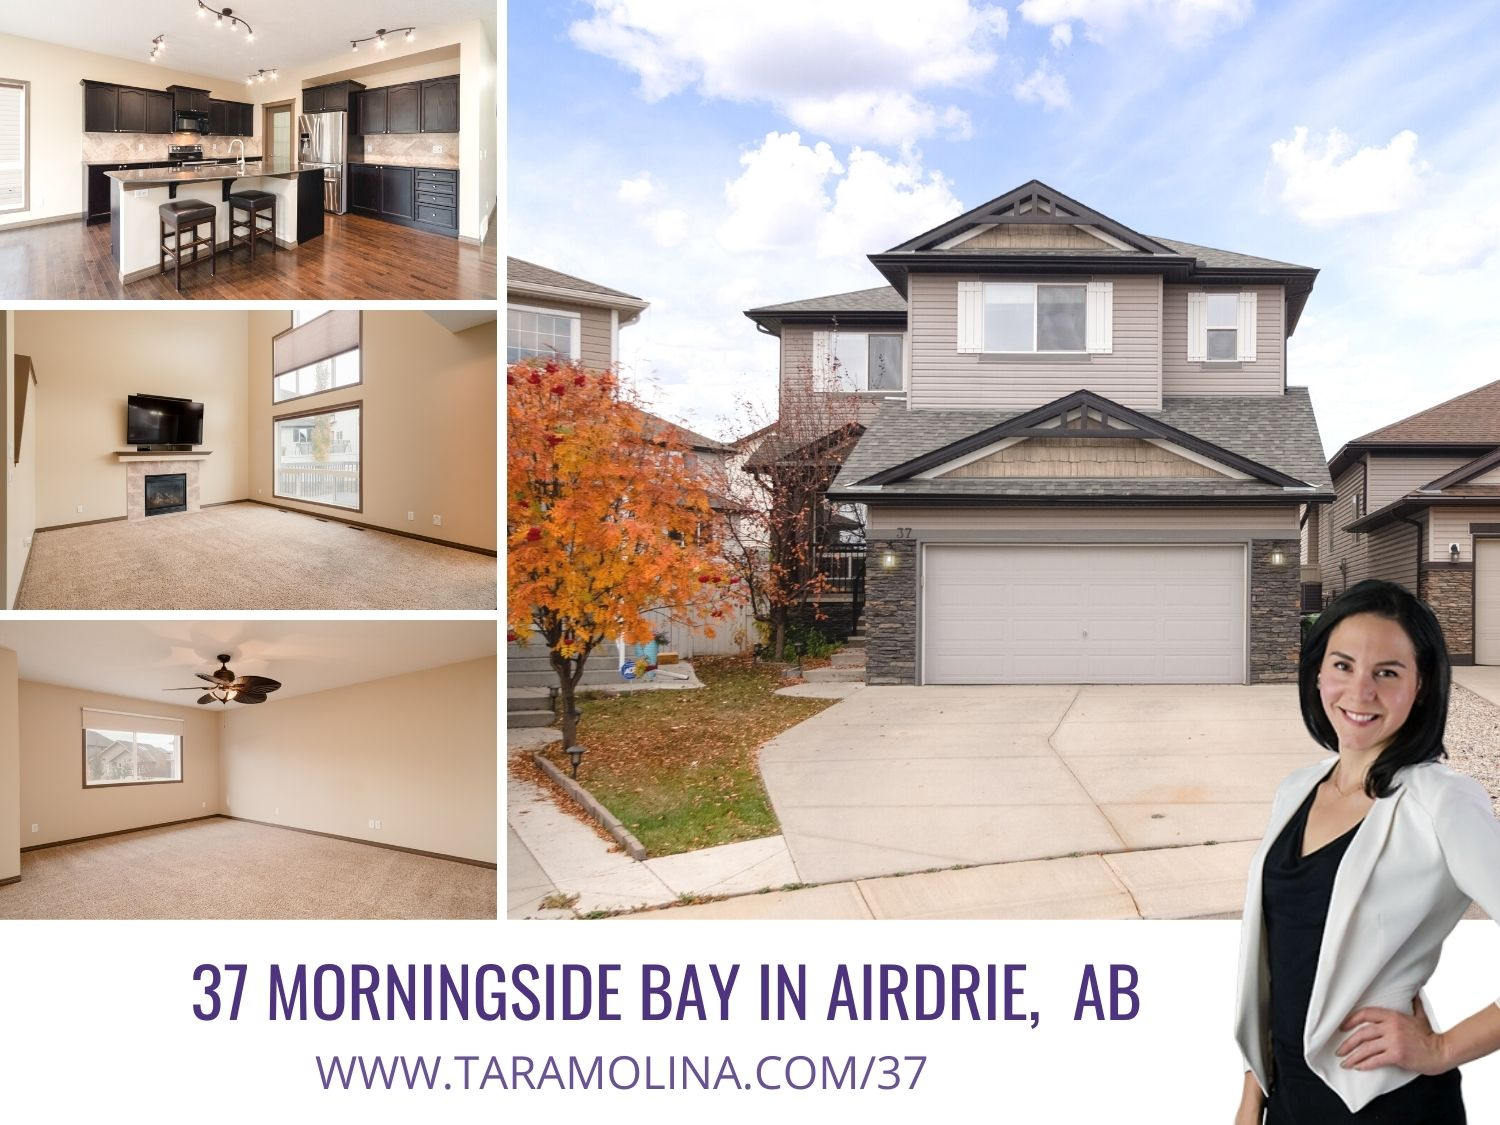 37 Morningside bay in Airdrie